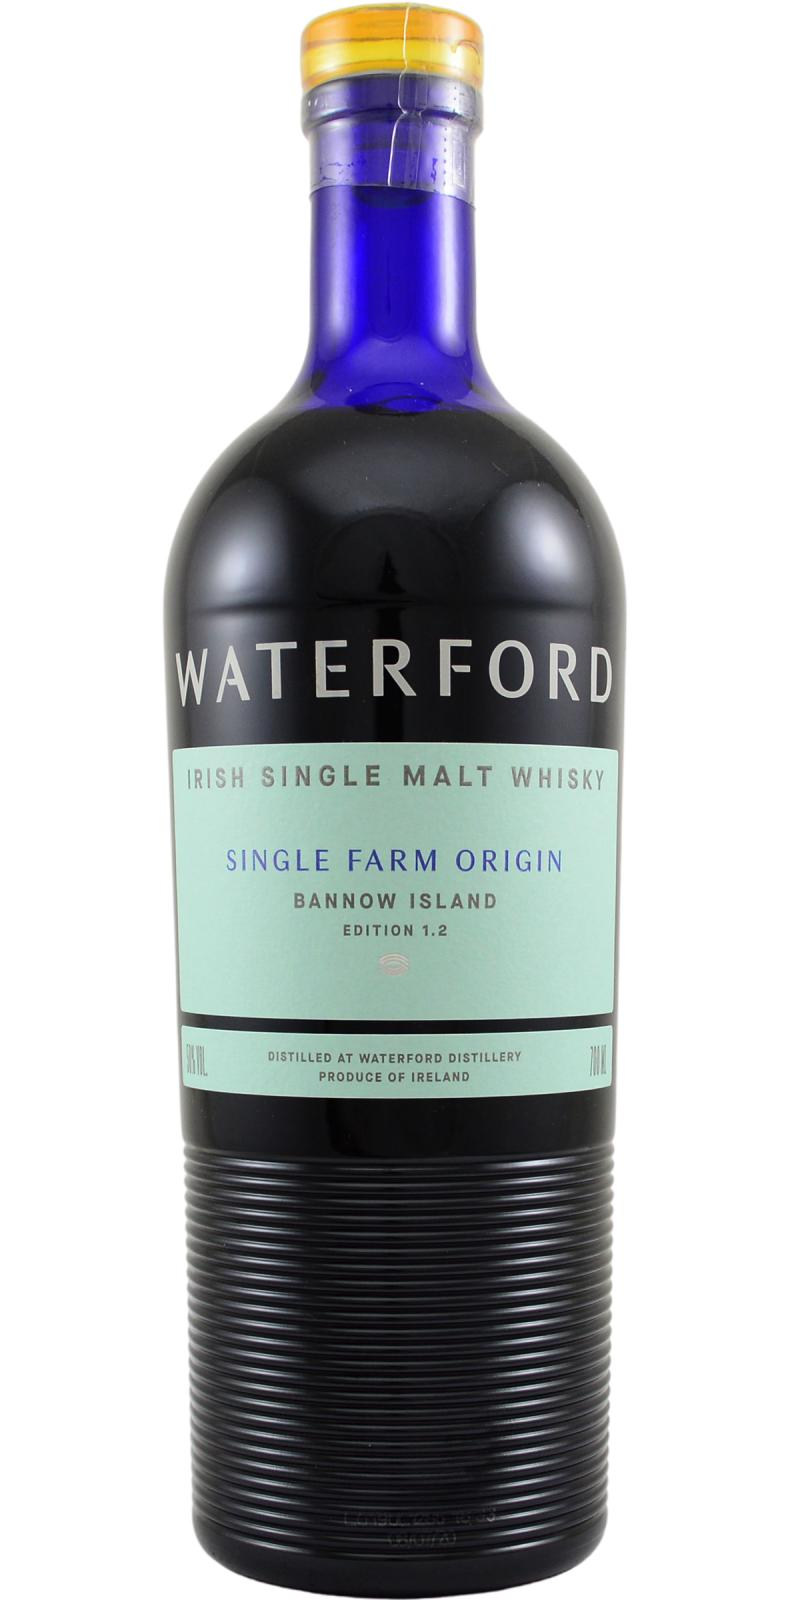 Waterford Bannow Island: Edition 1.2